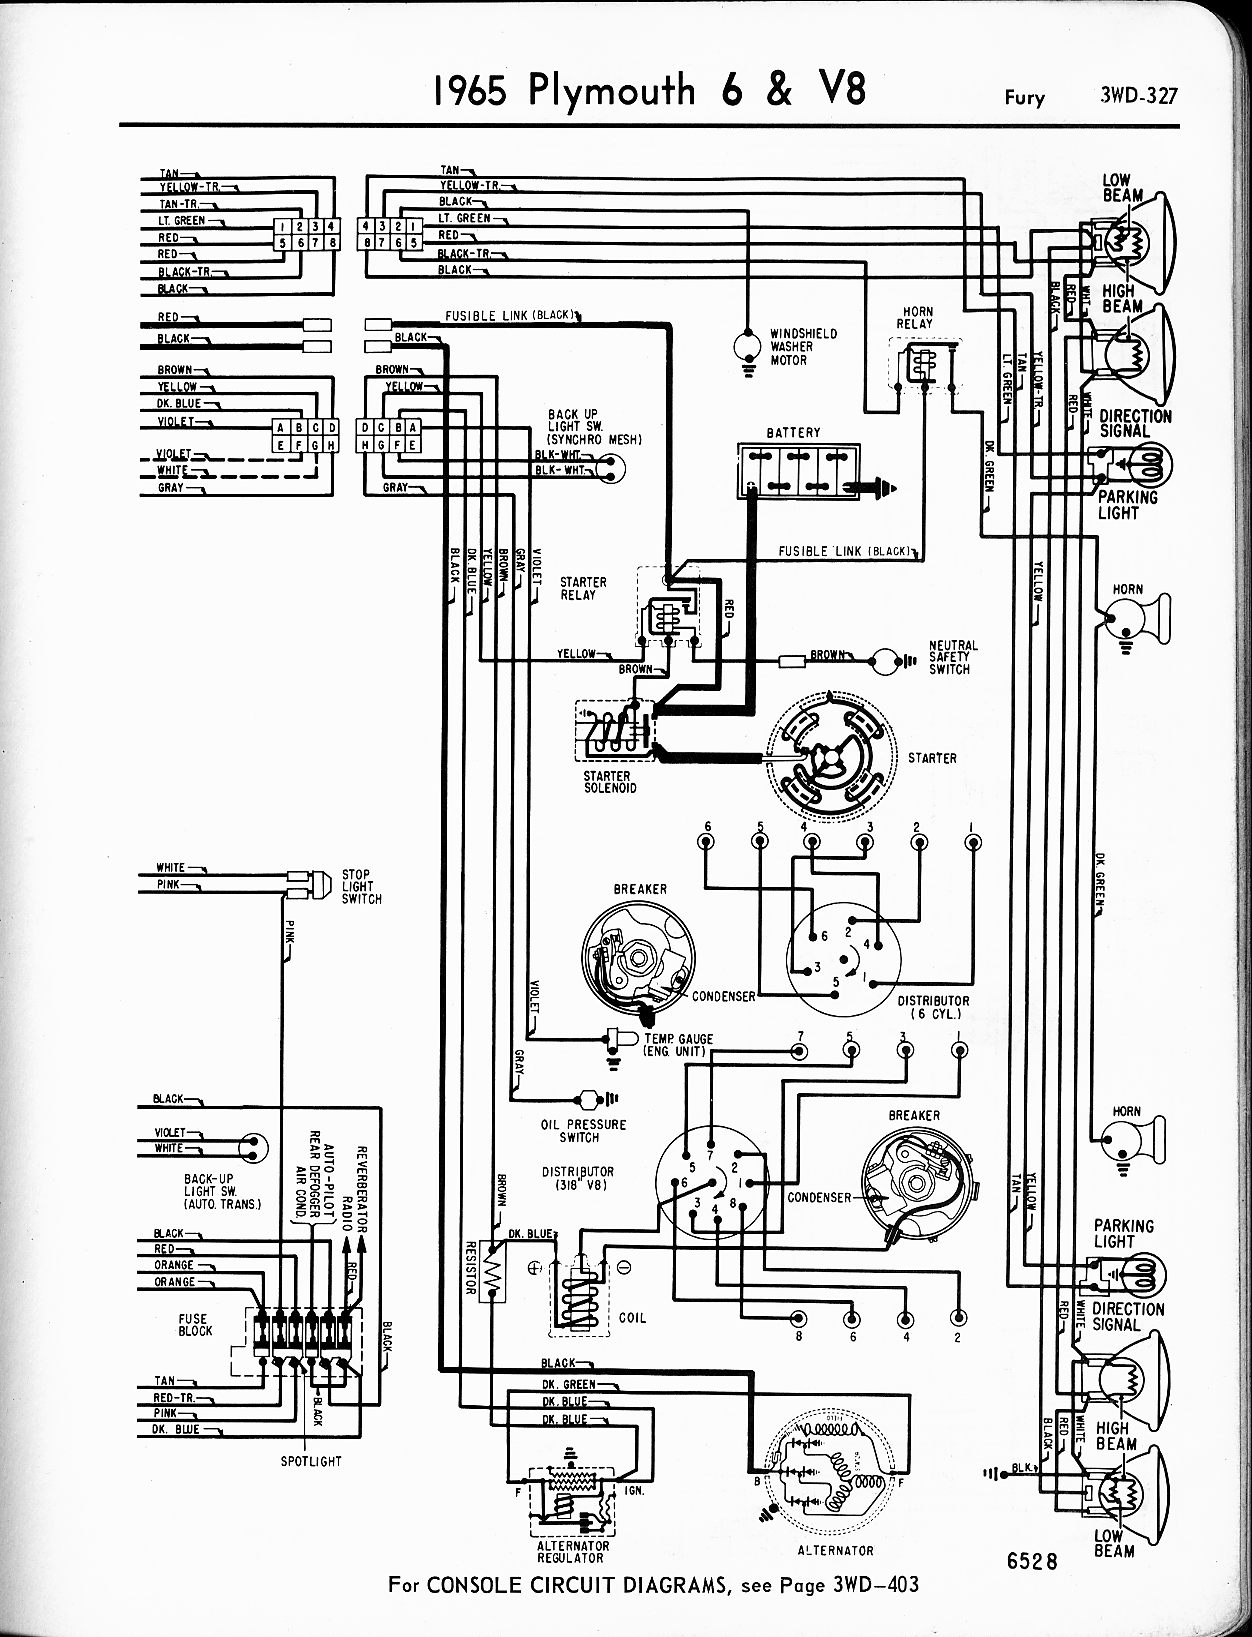 Pleasant 1951 Ford Wiper Diagram Wiring Diagram Database Wiring 101 Capemaxxcnl